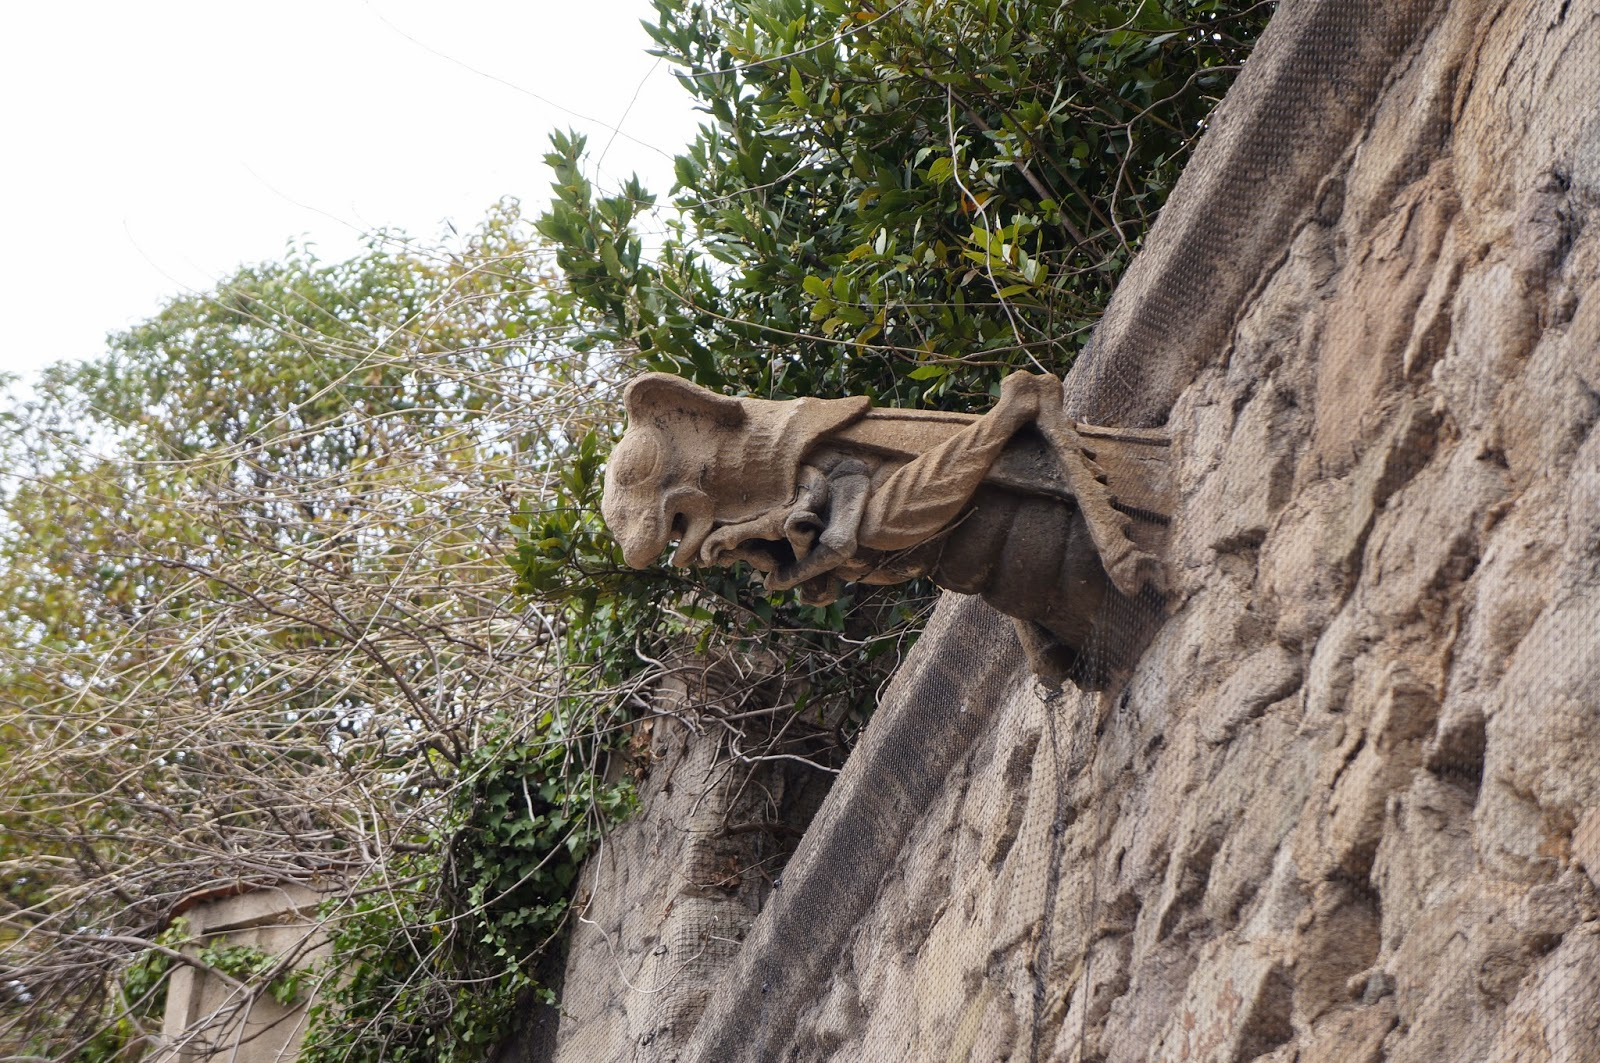 Grasshopper / locust gargoyle in Barcelona Spain